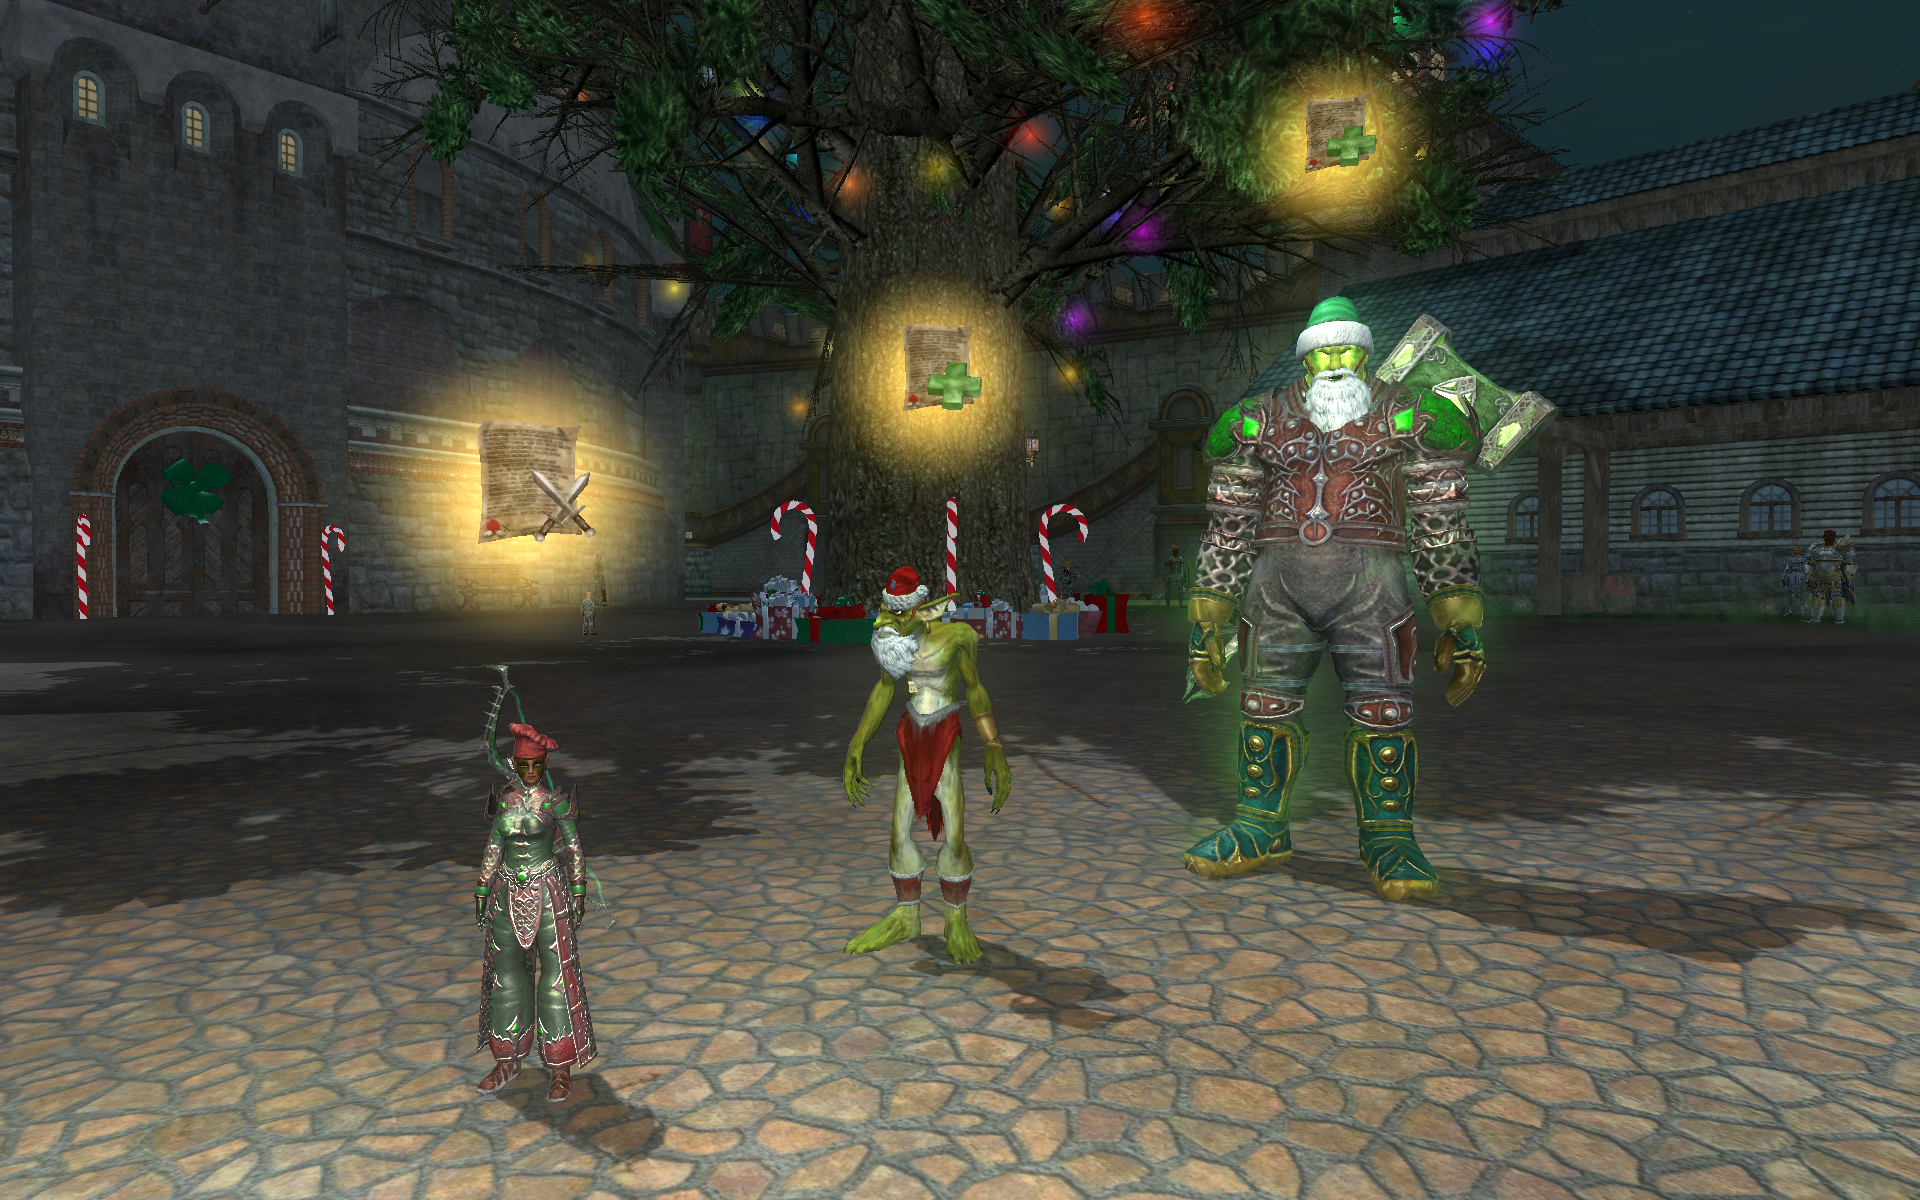 Winter festivities descend on both classic EverQuest and EverQuest